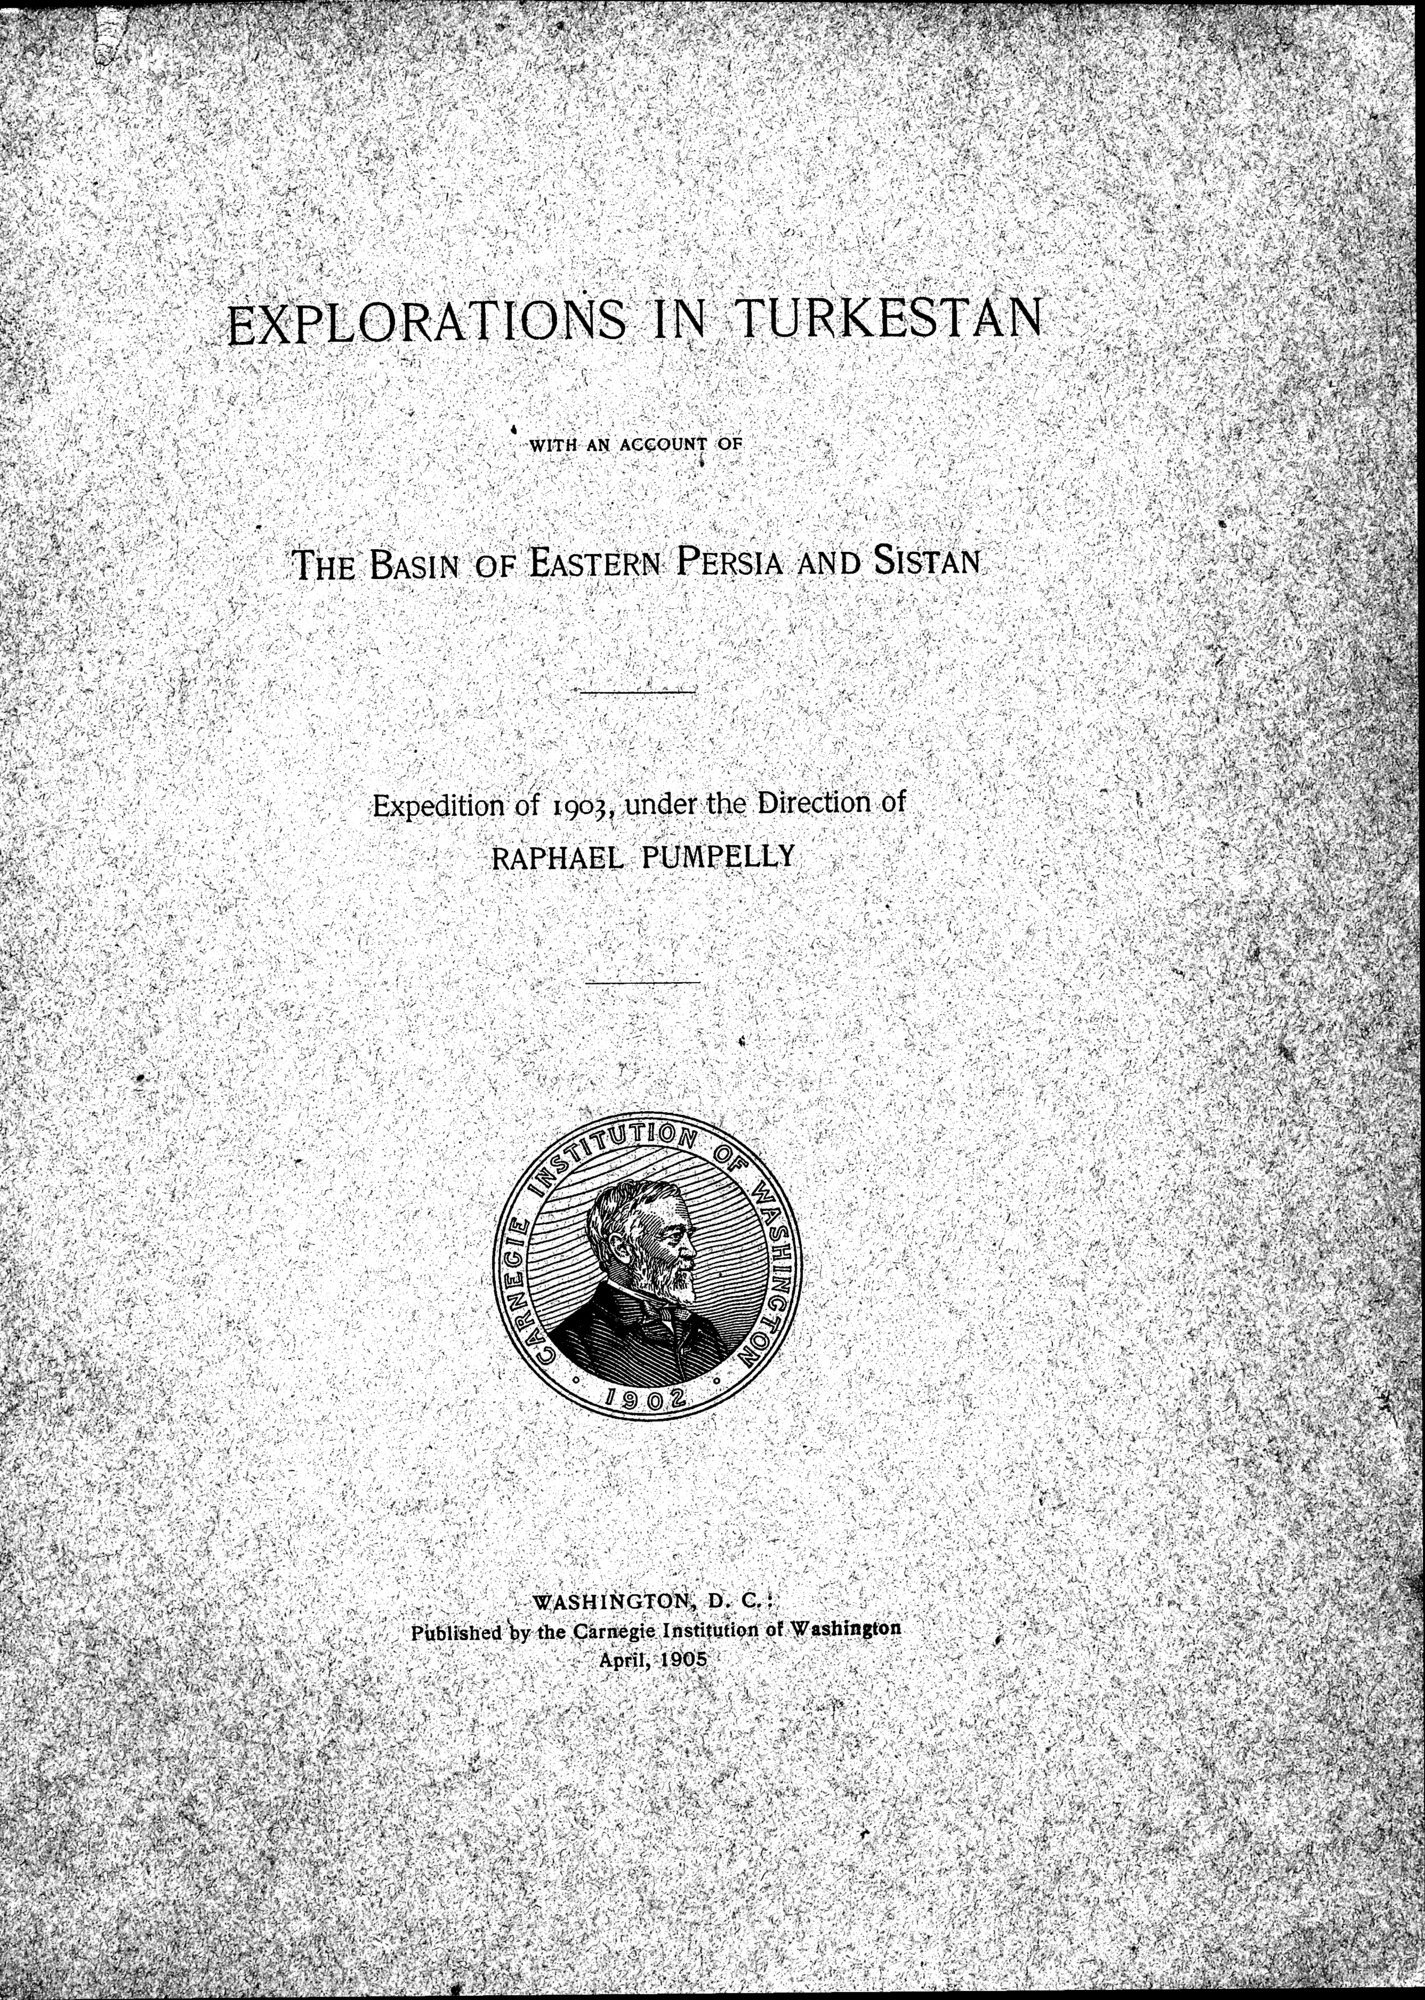 Explorations in Turkestan 1903 : vol.1 / Page 7 (Grayscale High Resolution Image)